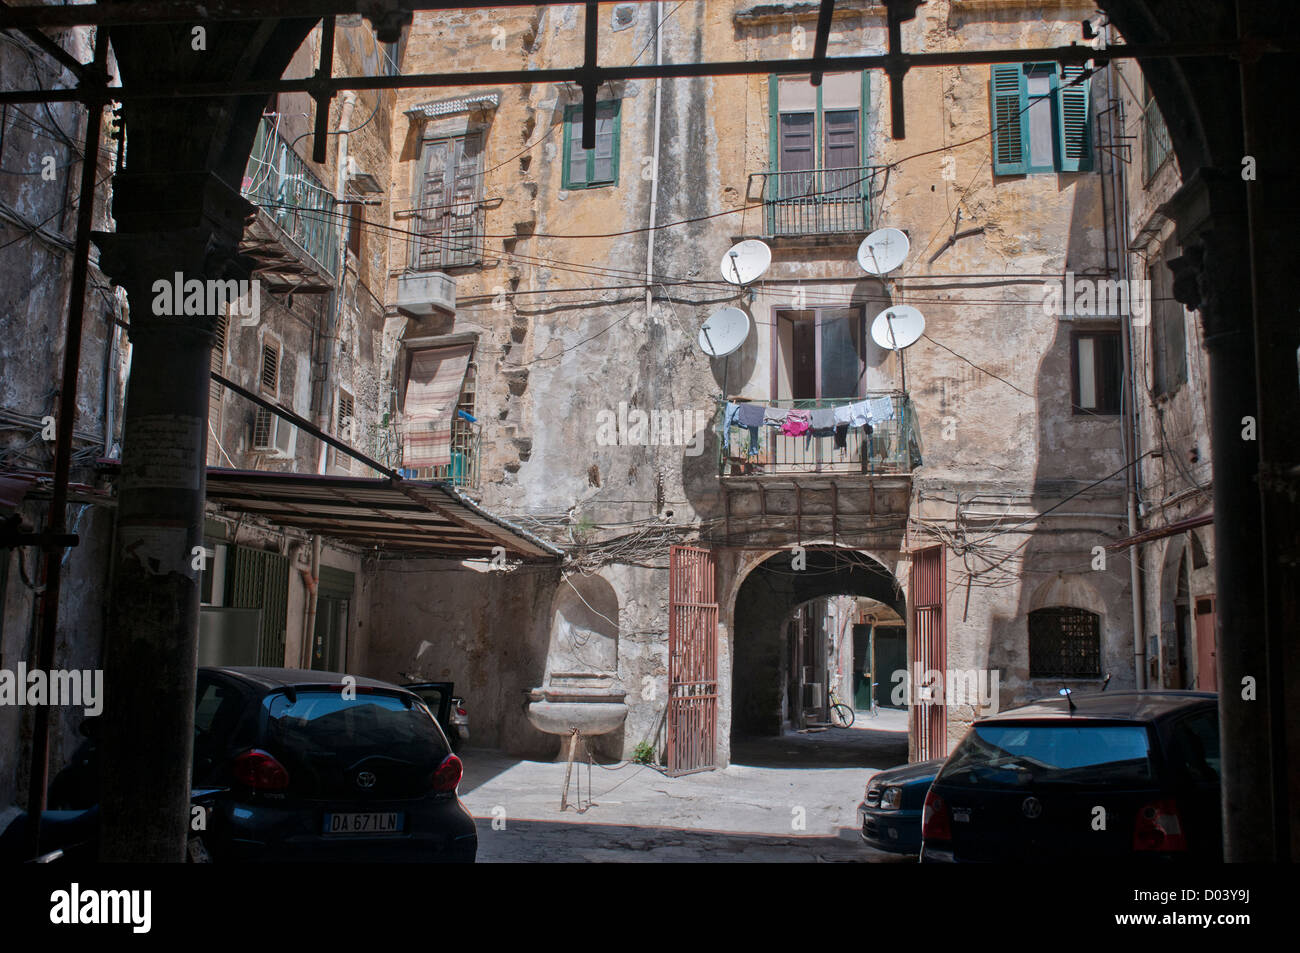 Palermo old city - Stock Image